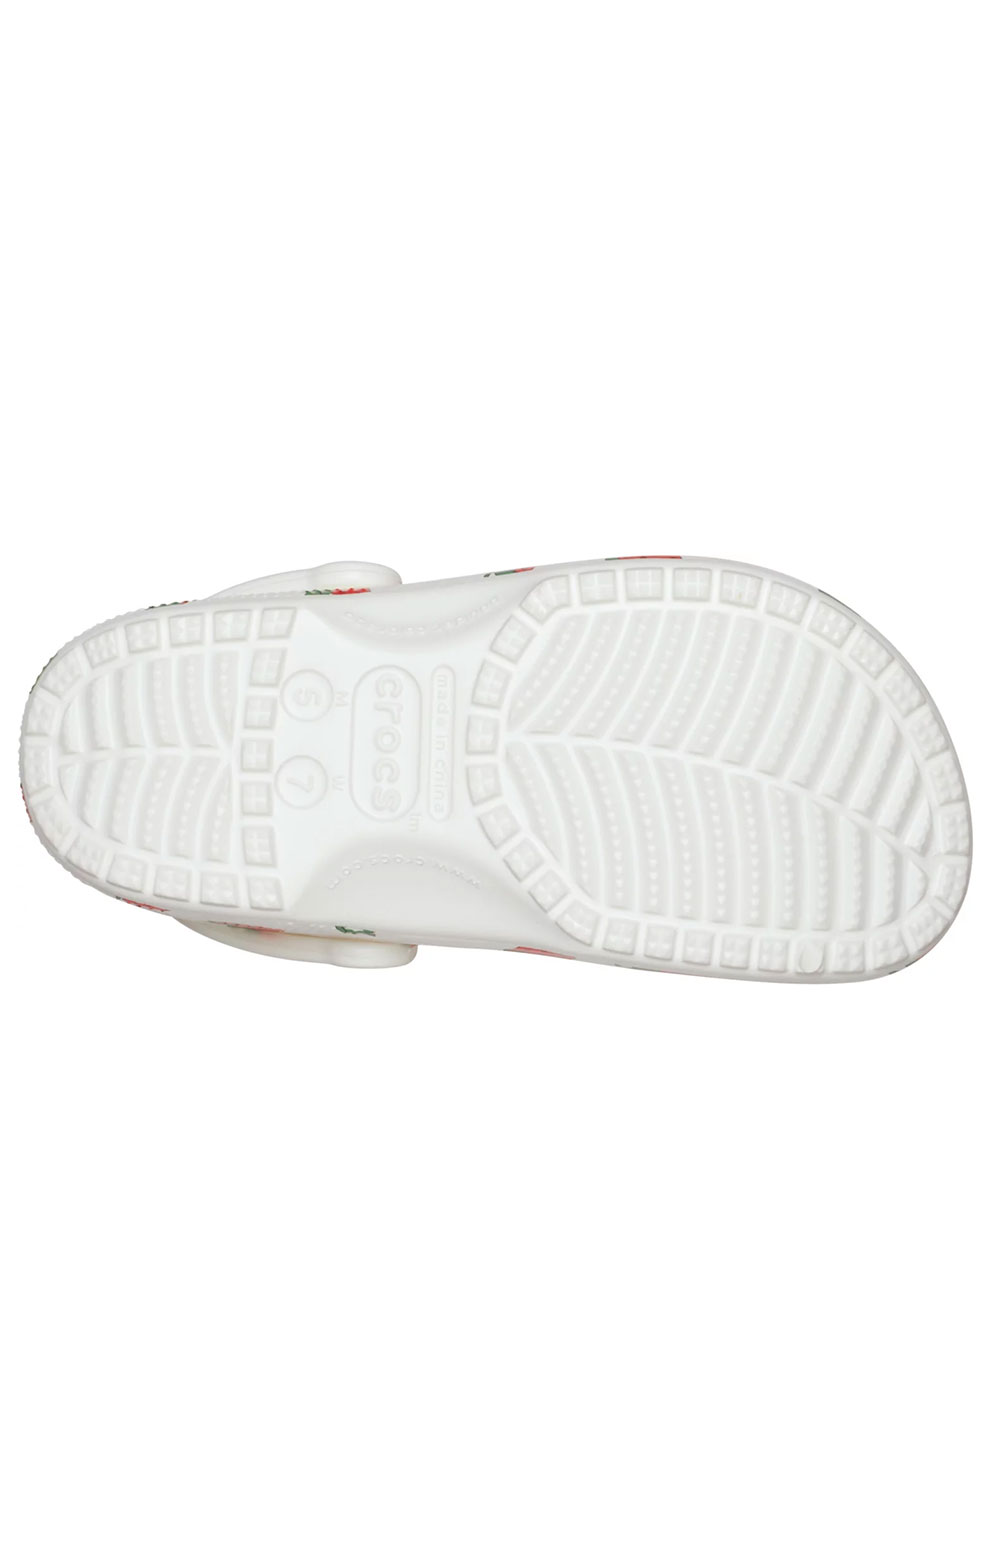 Classic Vacay Vibes Clogs - White  6